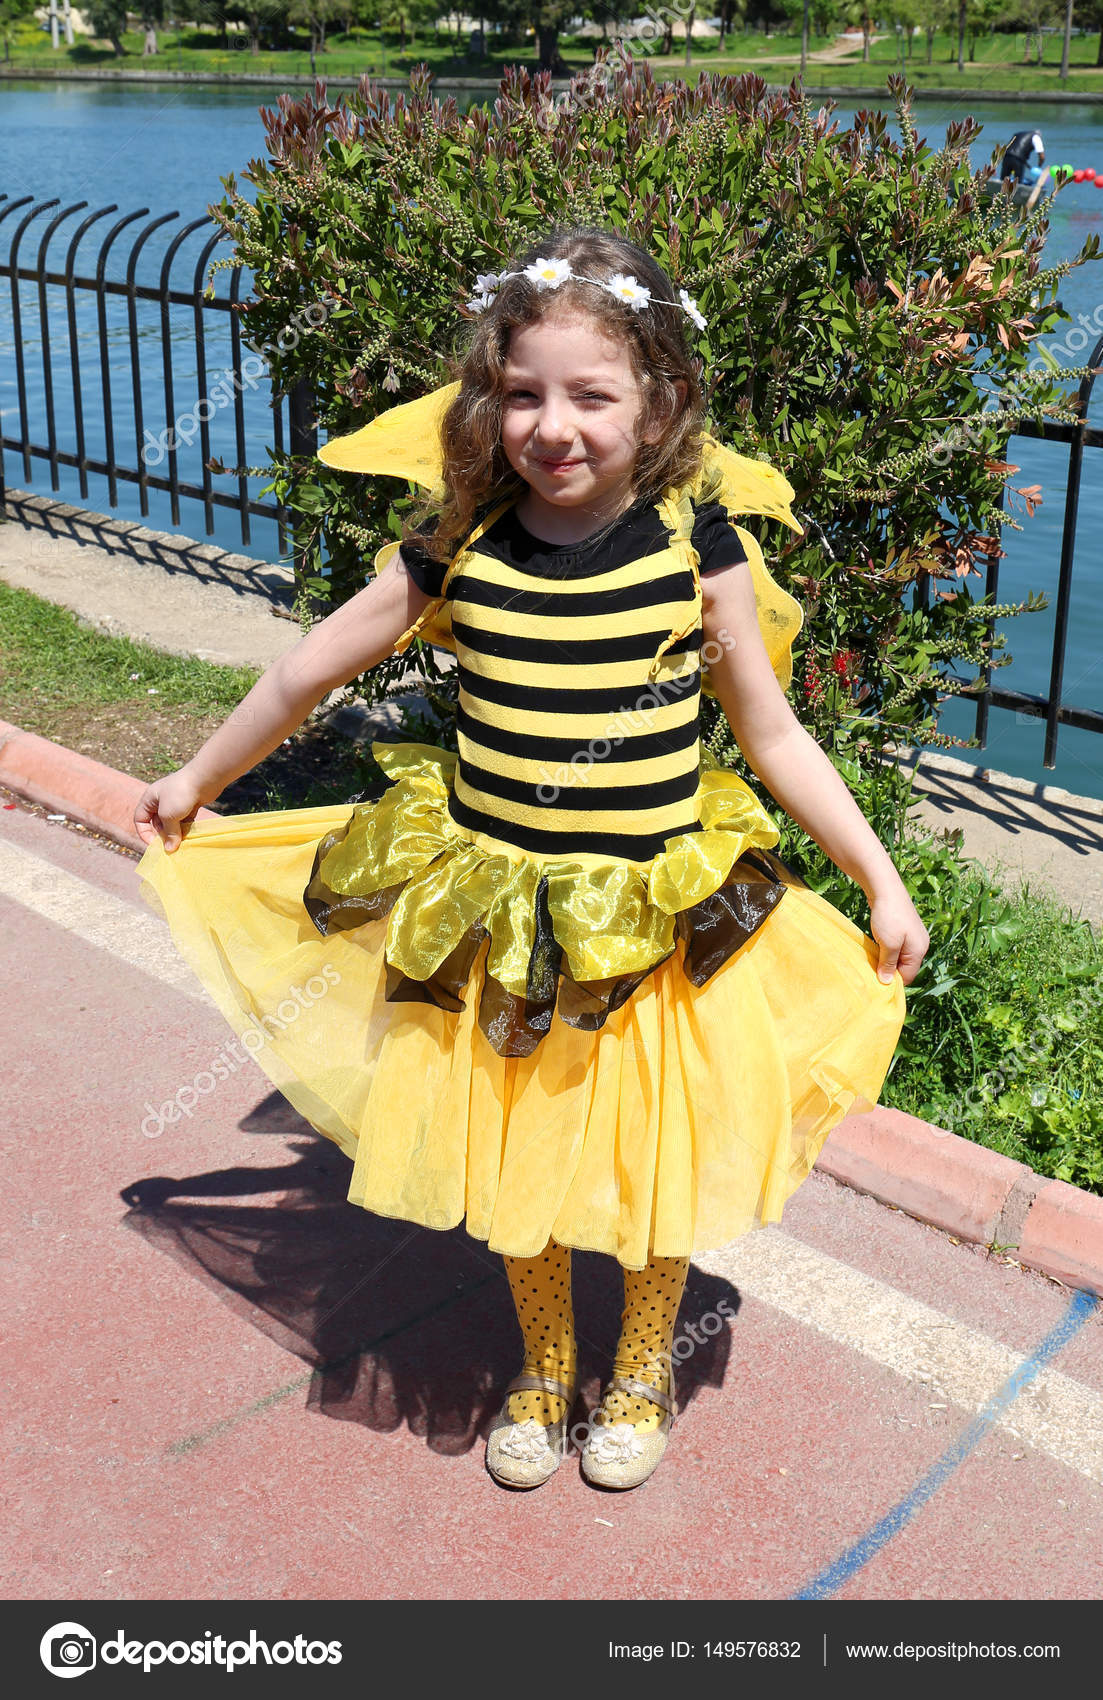 Unidentified Cute Little Girl With Bumble Bee Costume Posing At